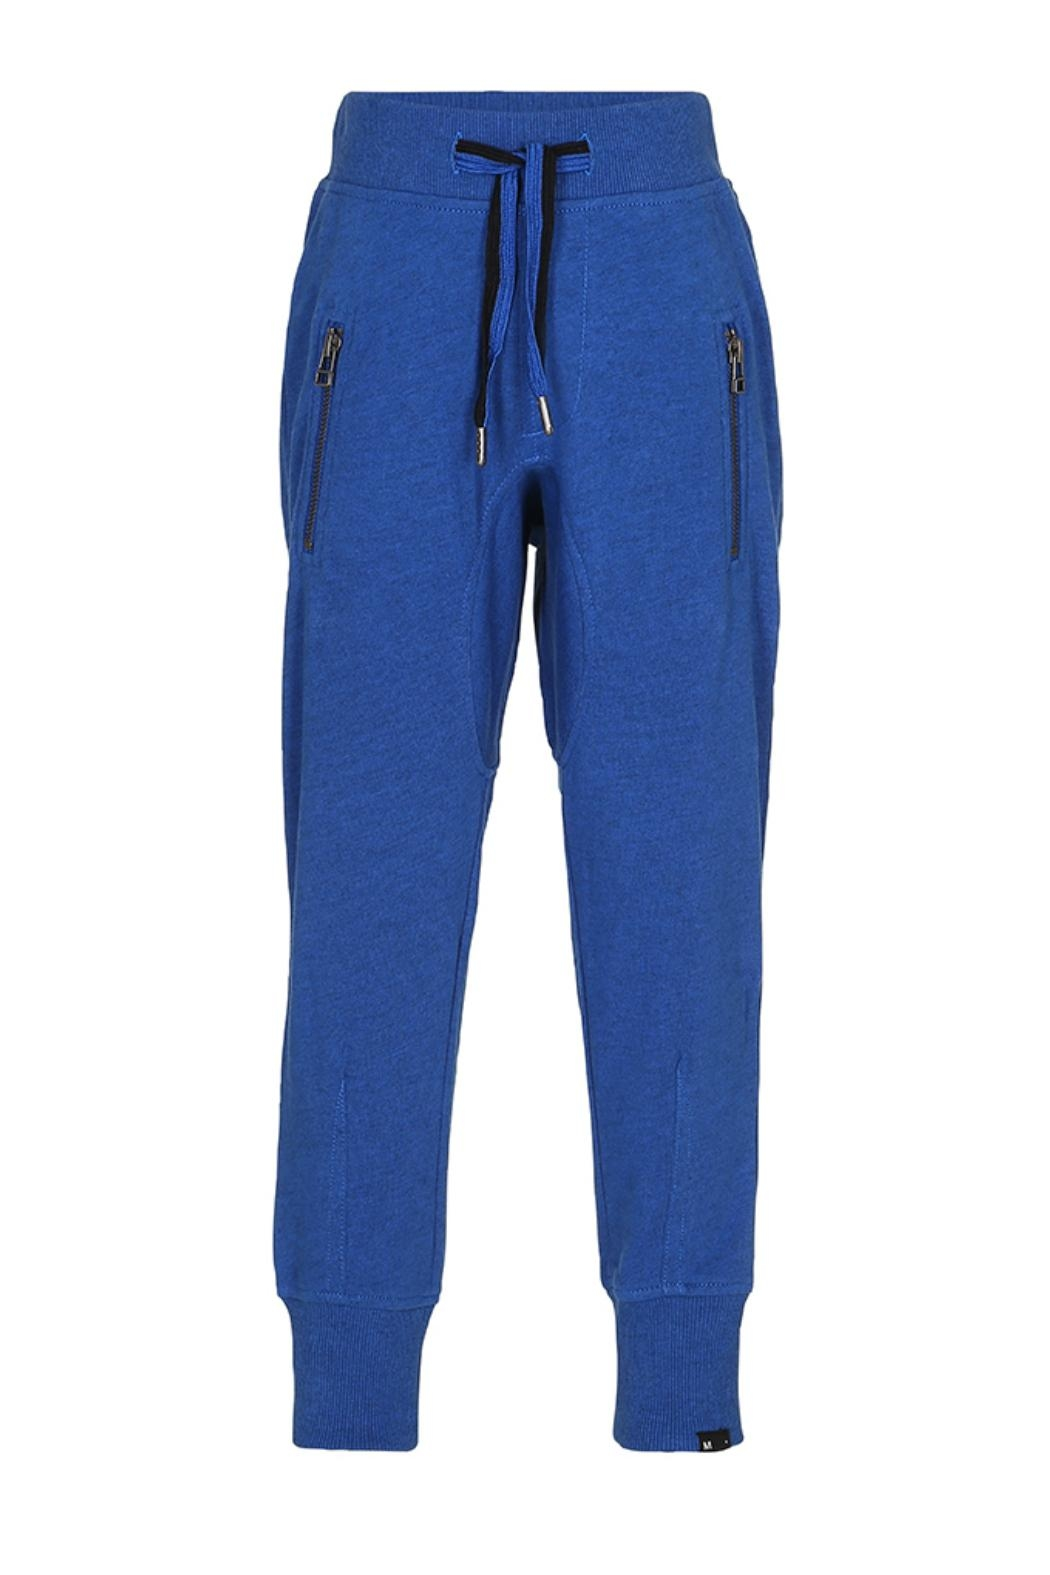 Molo Ashton Lapis Trousers - Main Image